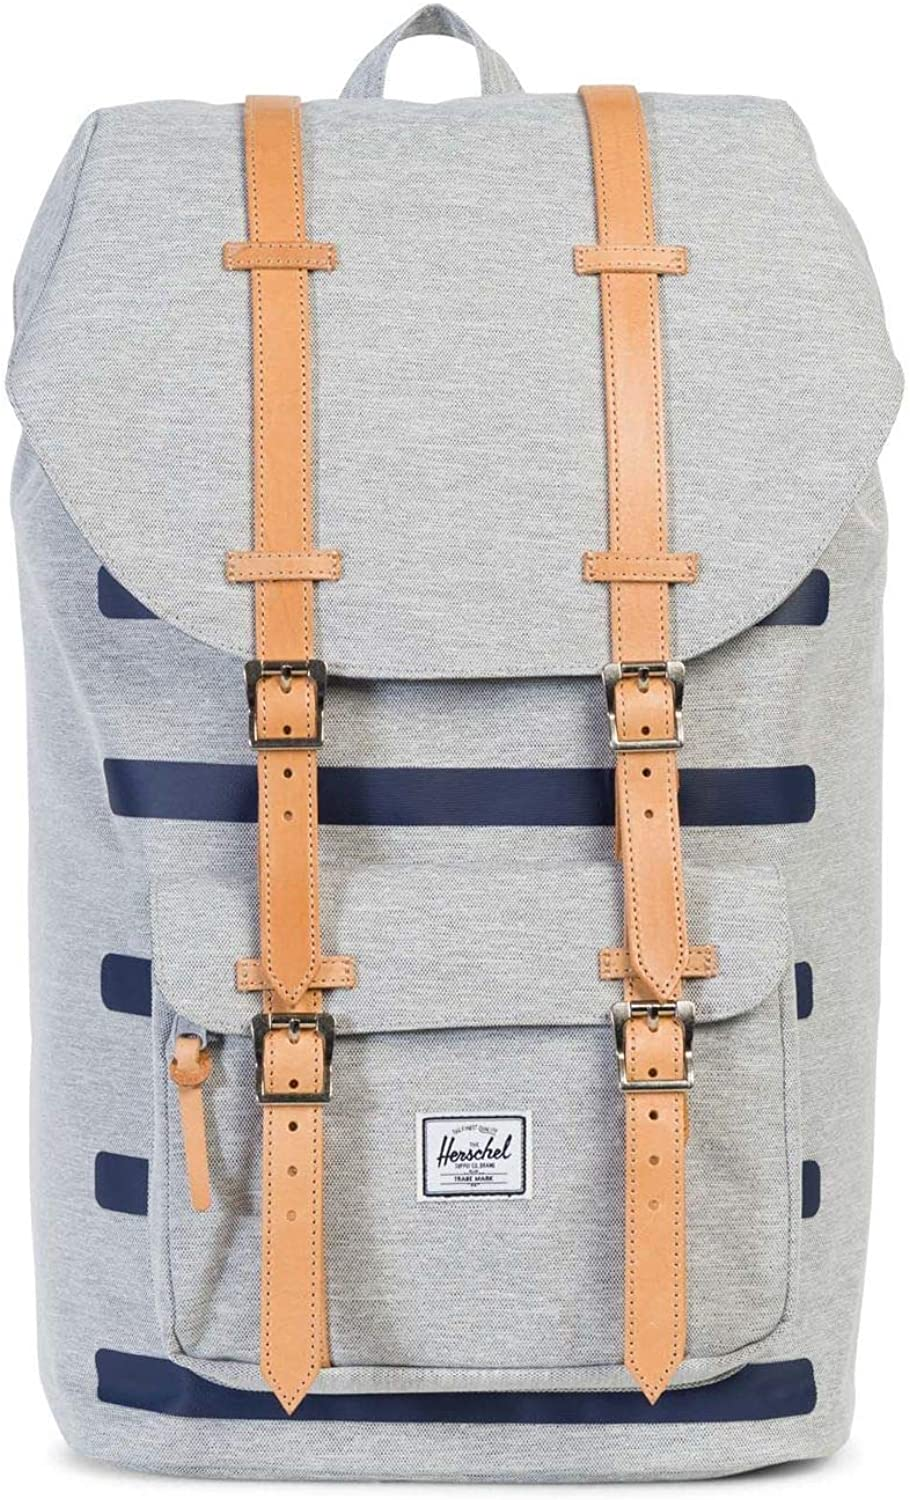 New Herschel Men's Little America Backpack Mesh Grey